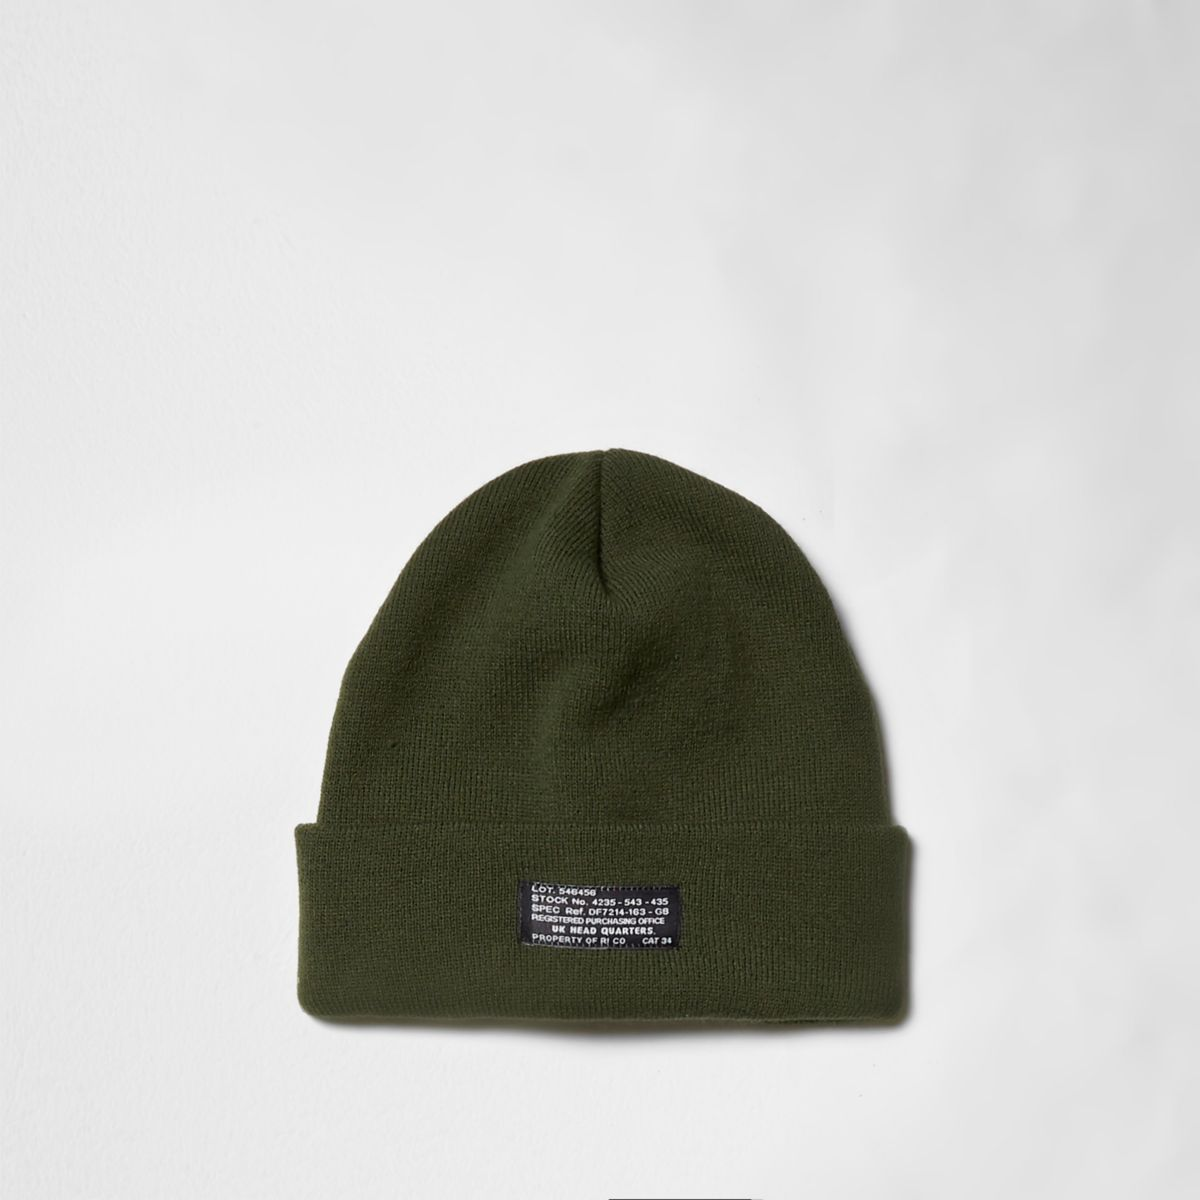 Green knit rolled up beanie hat